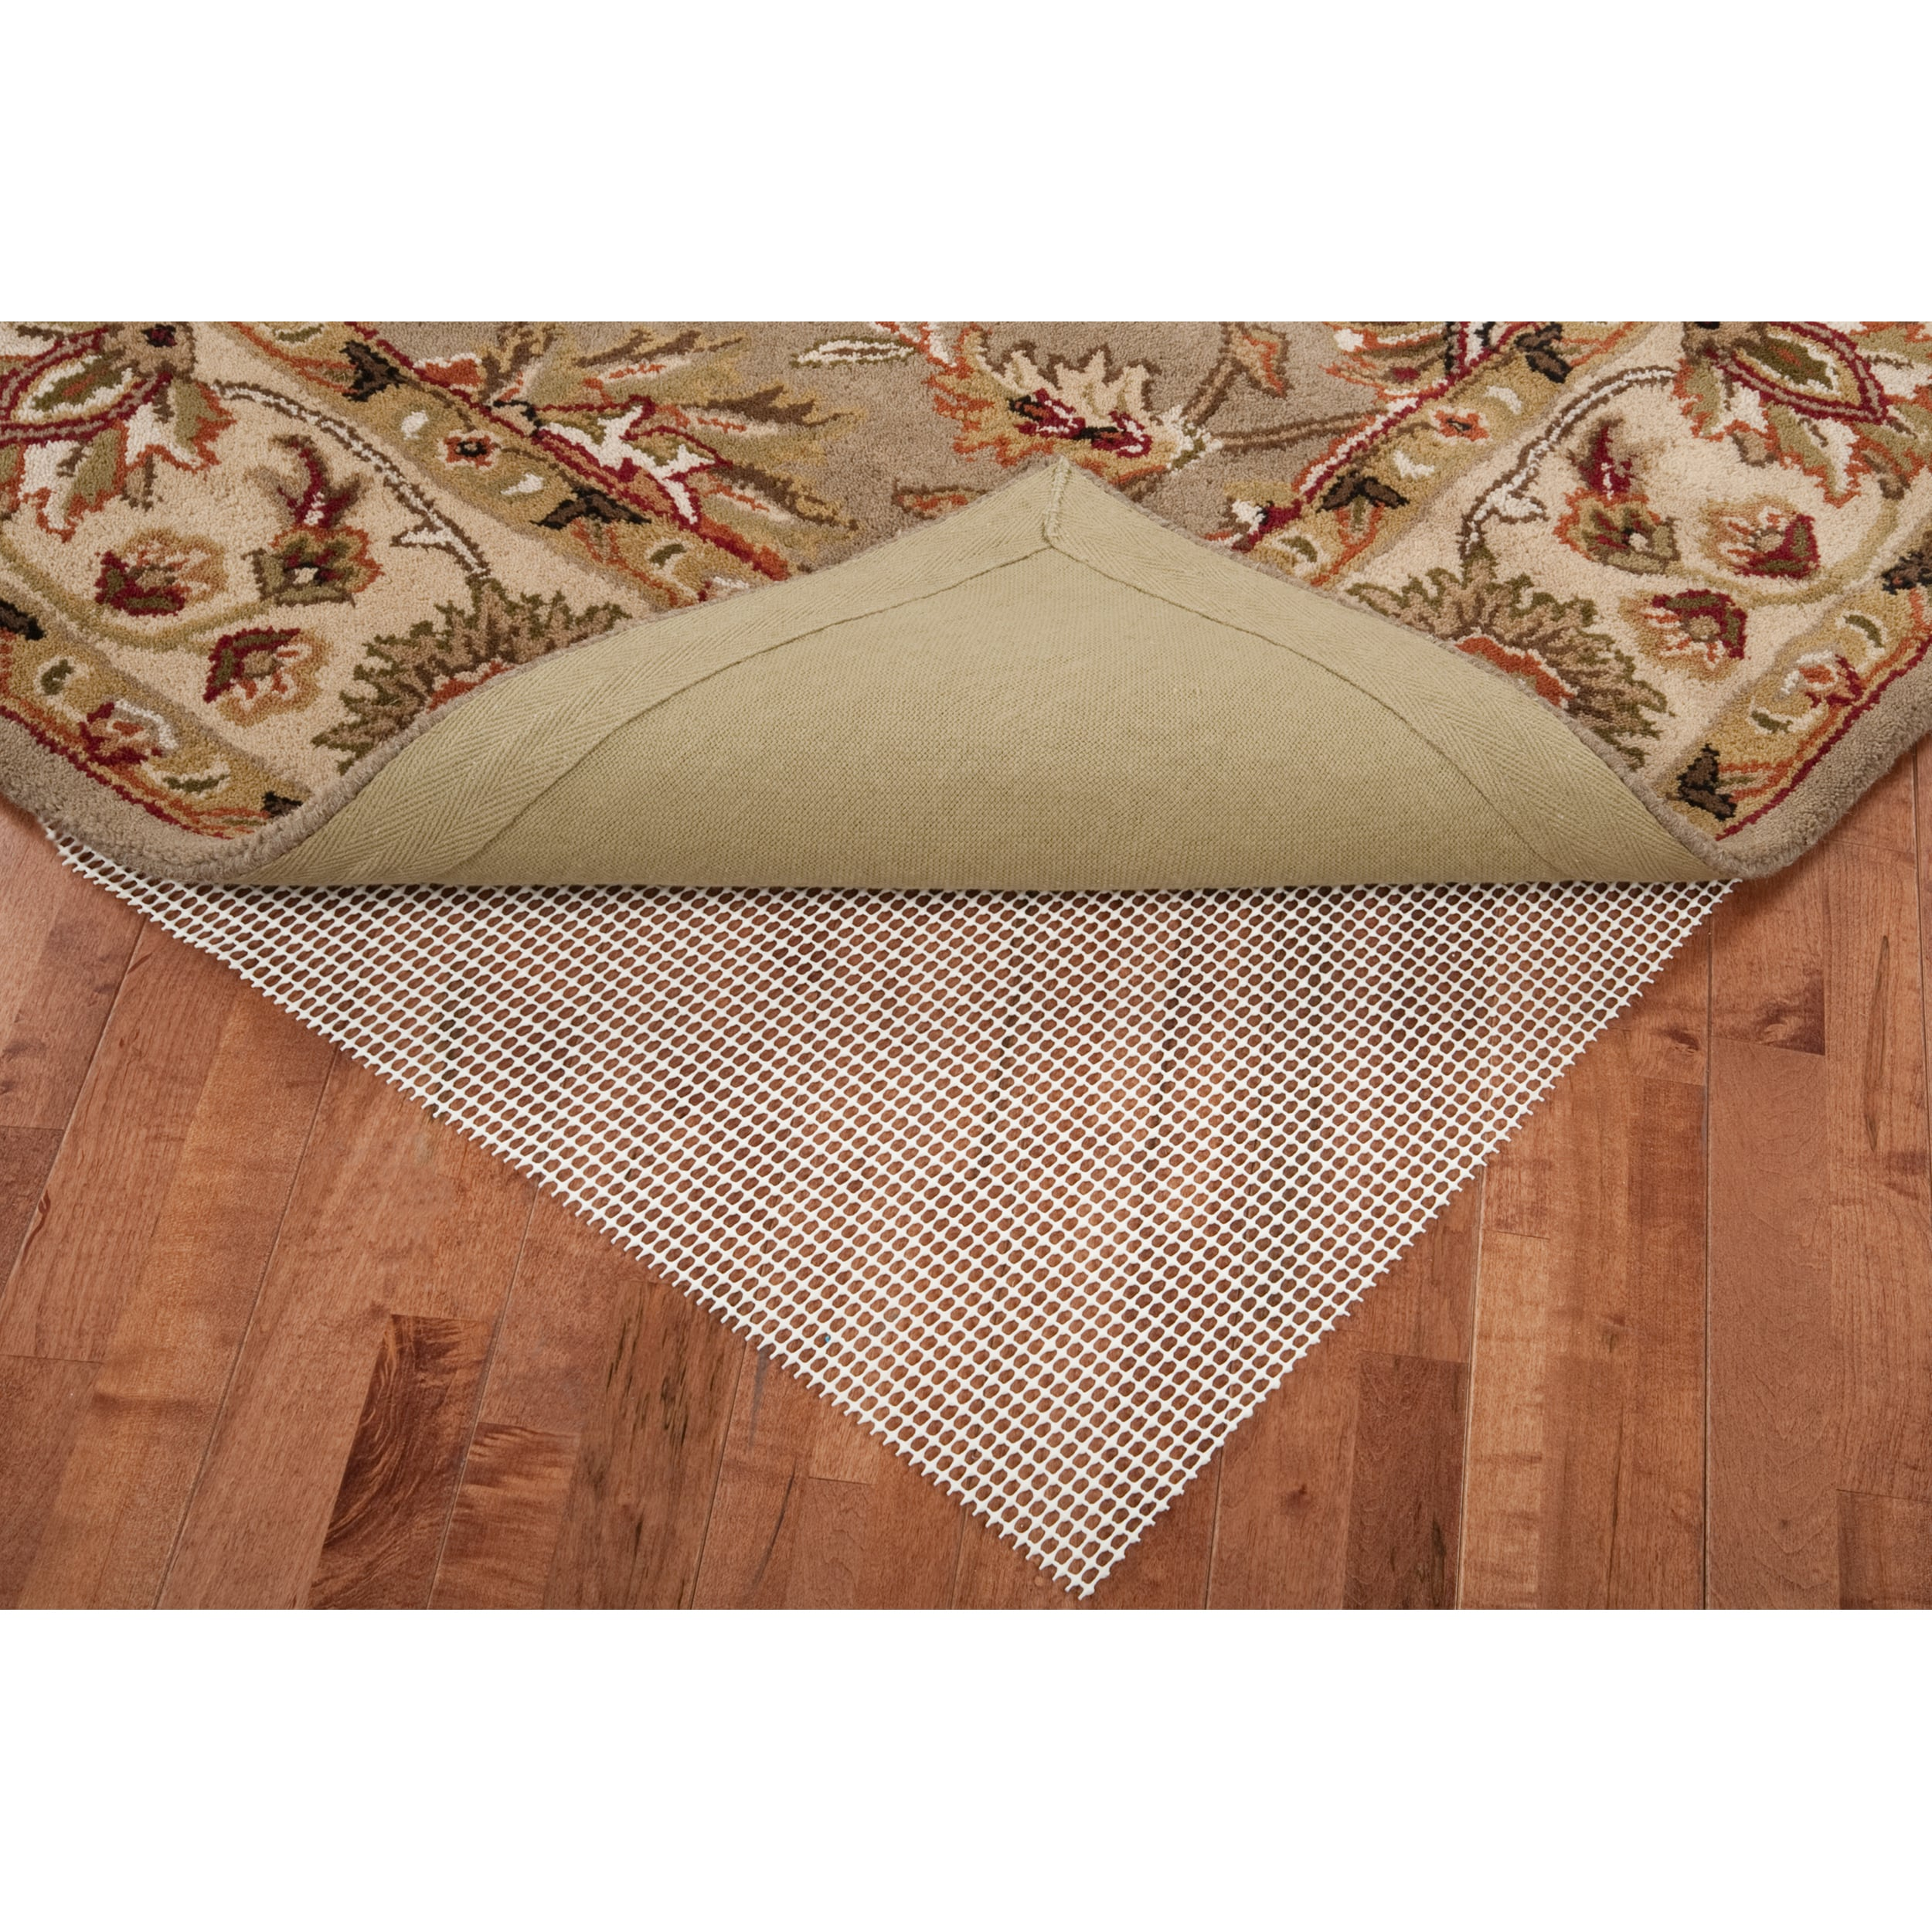 Limitless Rug Pad (9' x 12'), Size 9' x 11' (Synthetic)